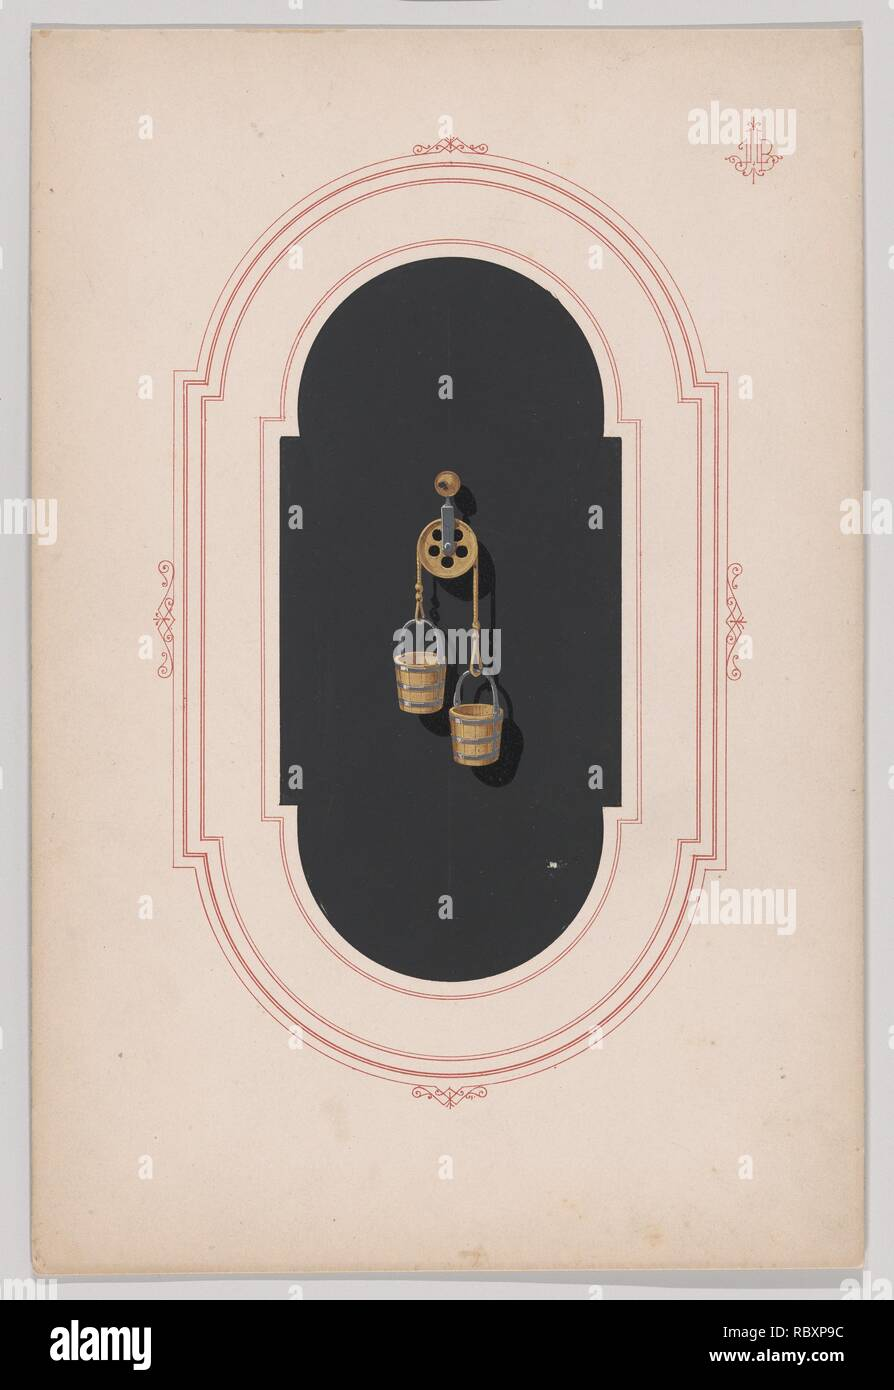 Anonymous, French, 19th century Design for an earring with buckets and pulley, 19th century French,  Lithograph, ink and watercolor; Sheet: 9 5/16 × 6 1/4 in. (23.6 × 15.8 cm) The Metropolitan Museum of Art, New York, The Elisha Whittelsey Collection, The Elisha Whittelsey Fund, 1959 (59.564.77) http://www.metmuseum.org/Collections/search-the-collections/706023 - Stock Image